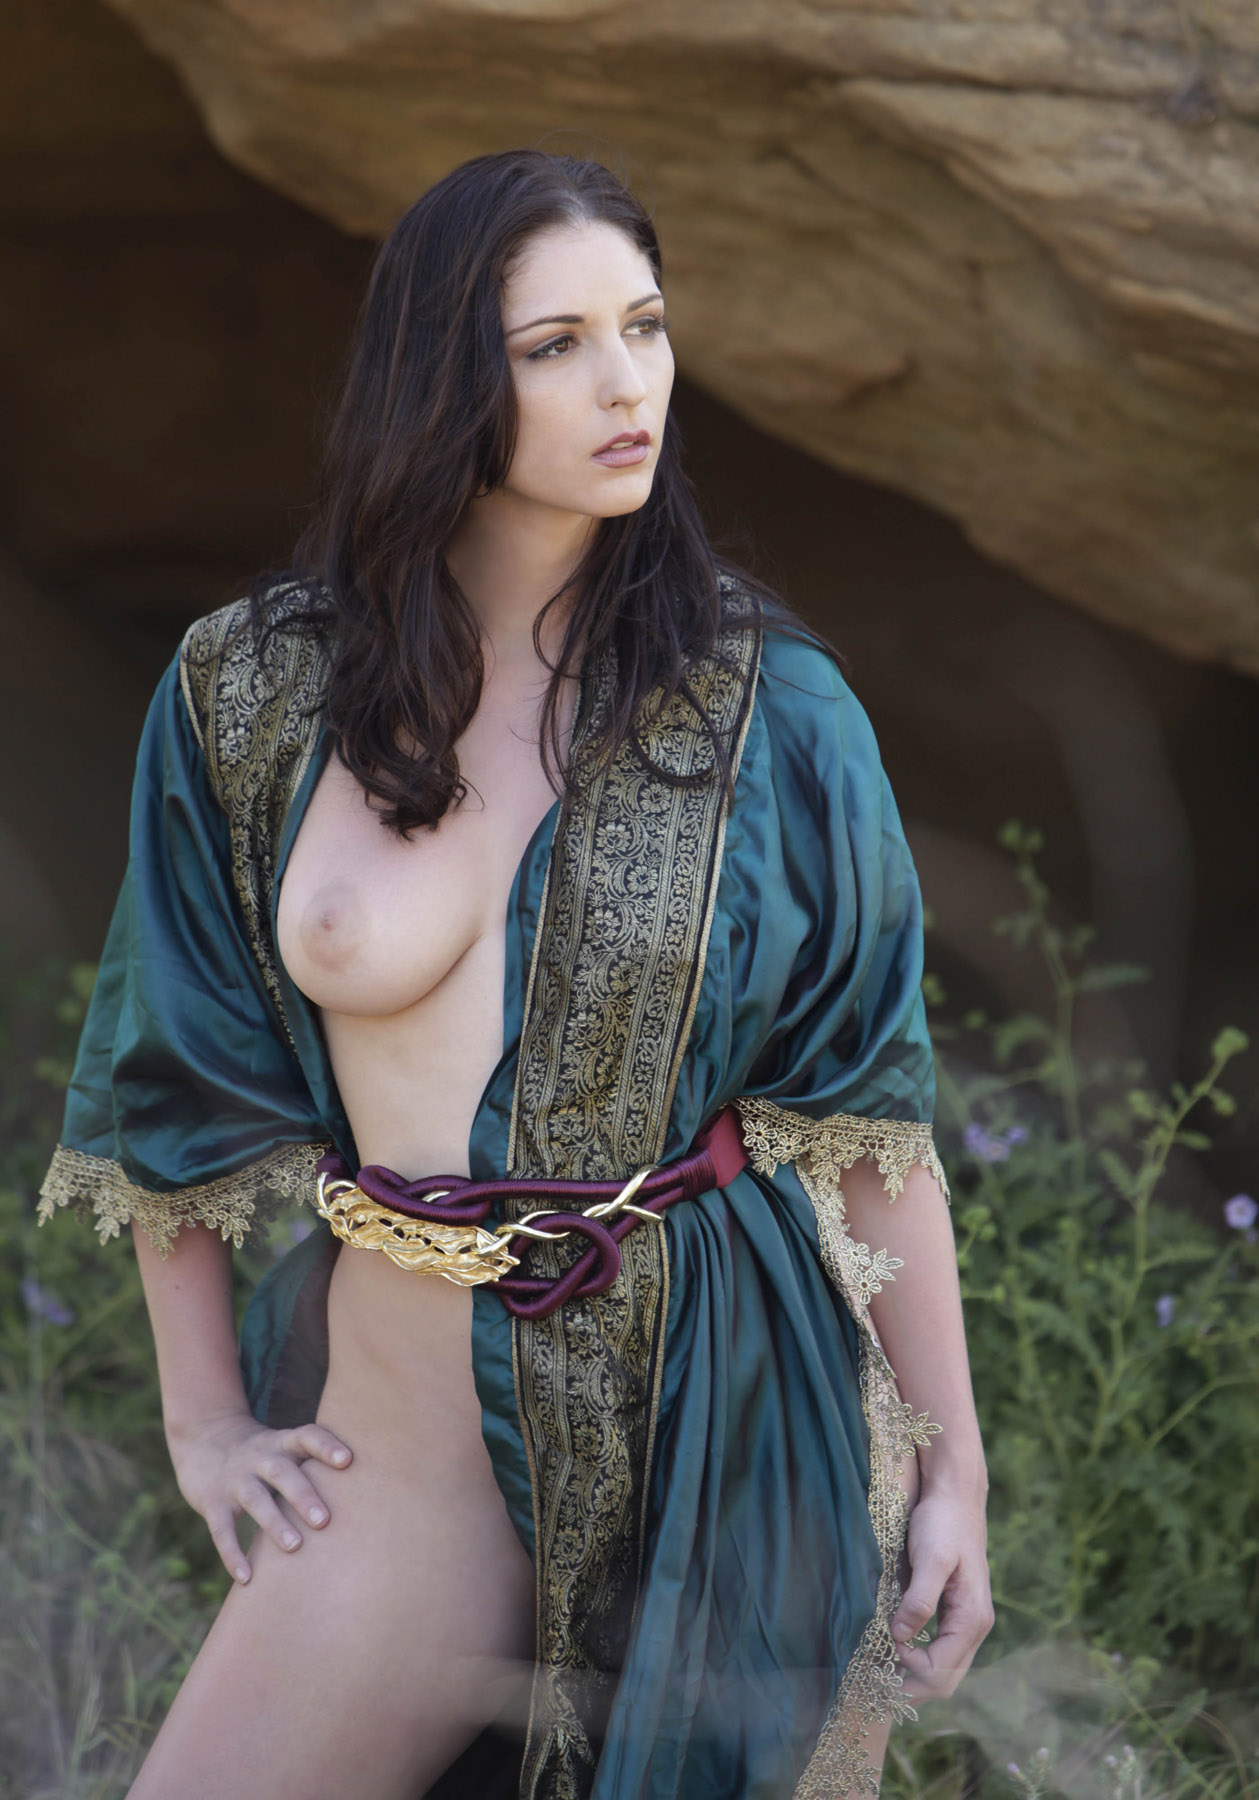 Medieval cloth erotic pictures nackt video